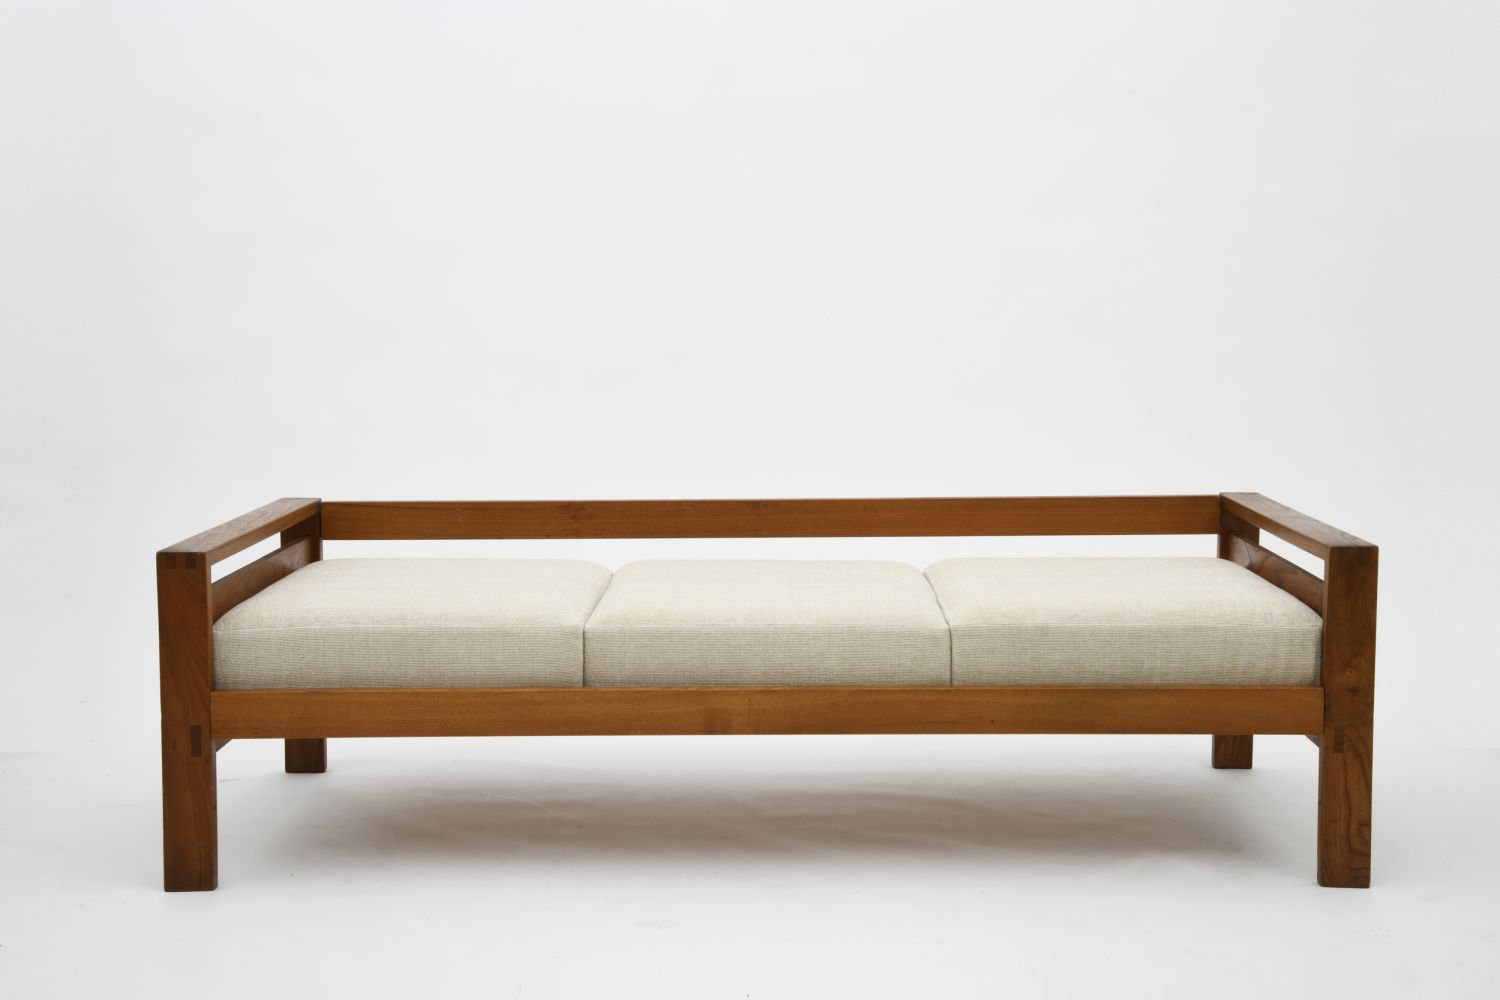 """Pierre Chapo's """"L06A"""" daybed, full straight view from slightly above"""